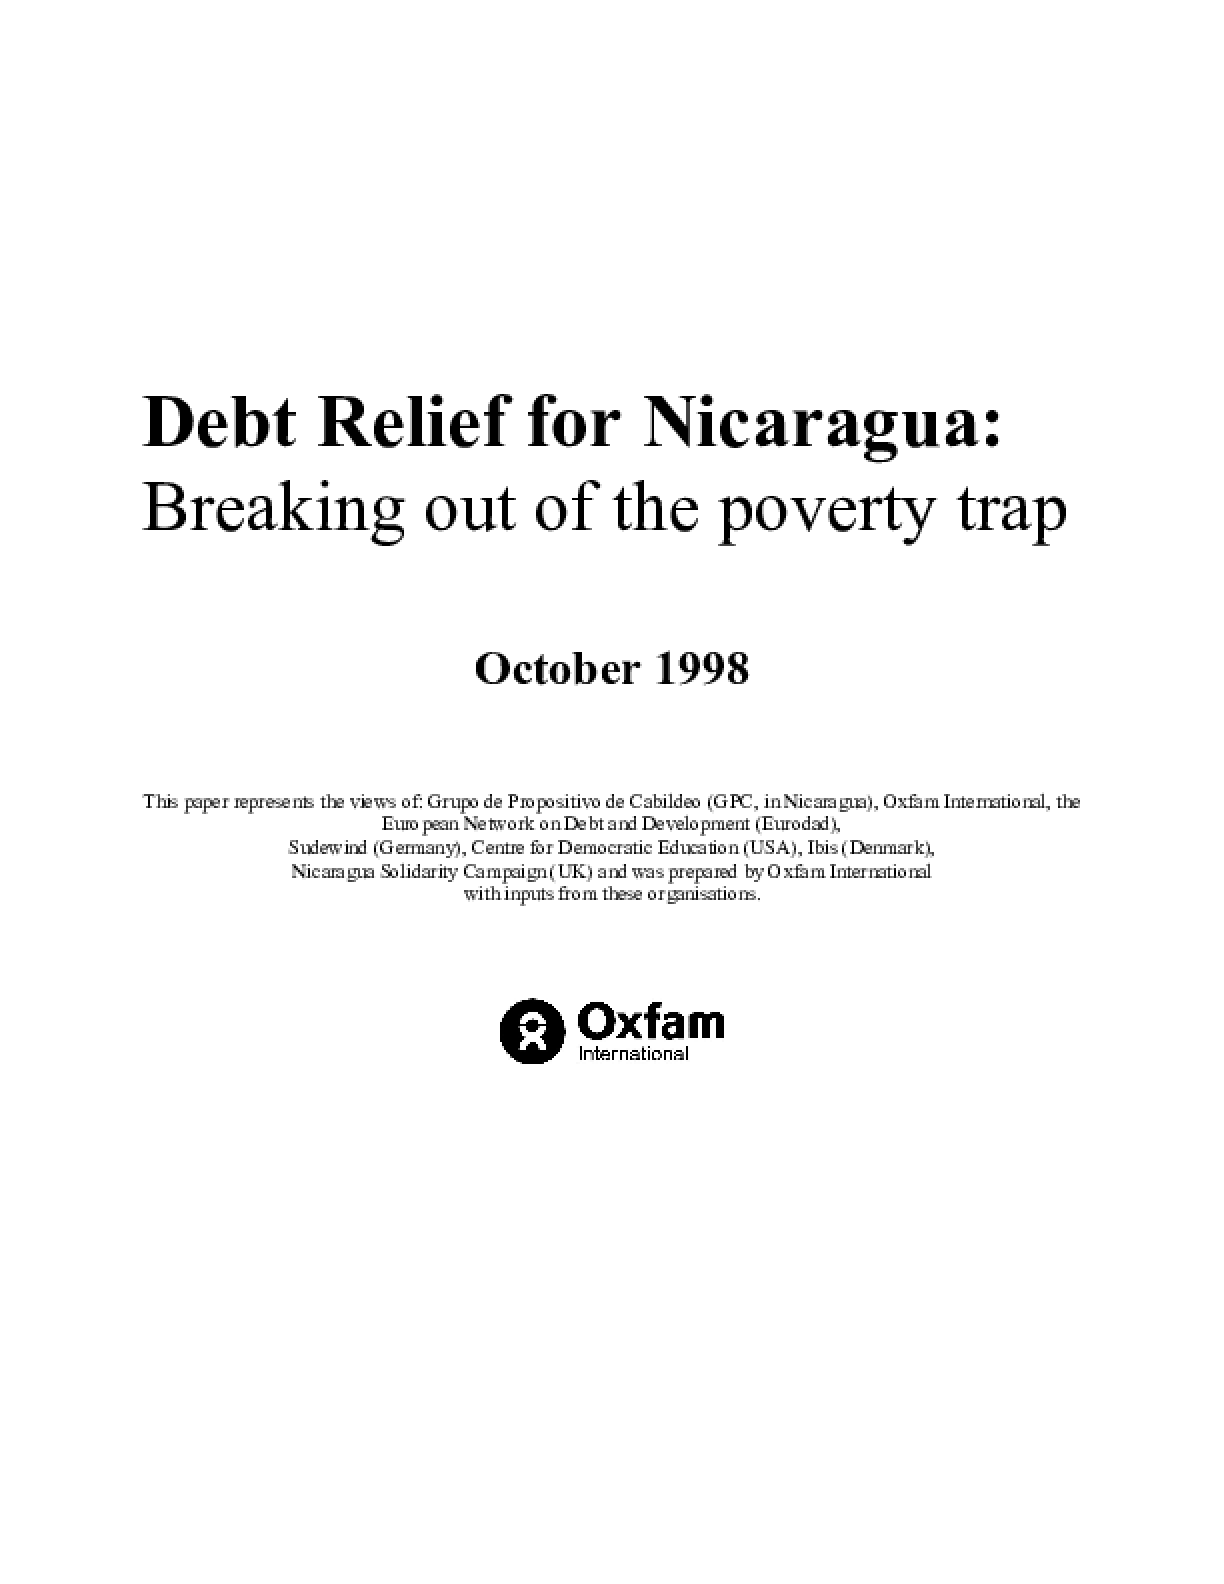 Debt Relief for Nicaragua: Breaking out of the Poverty Trap